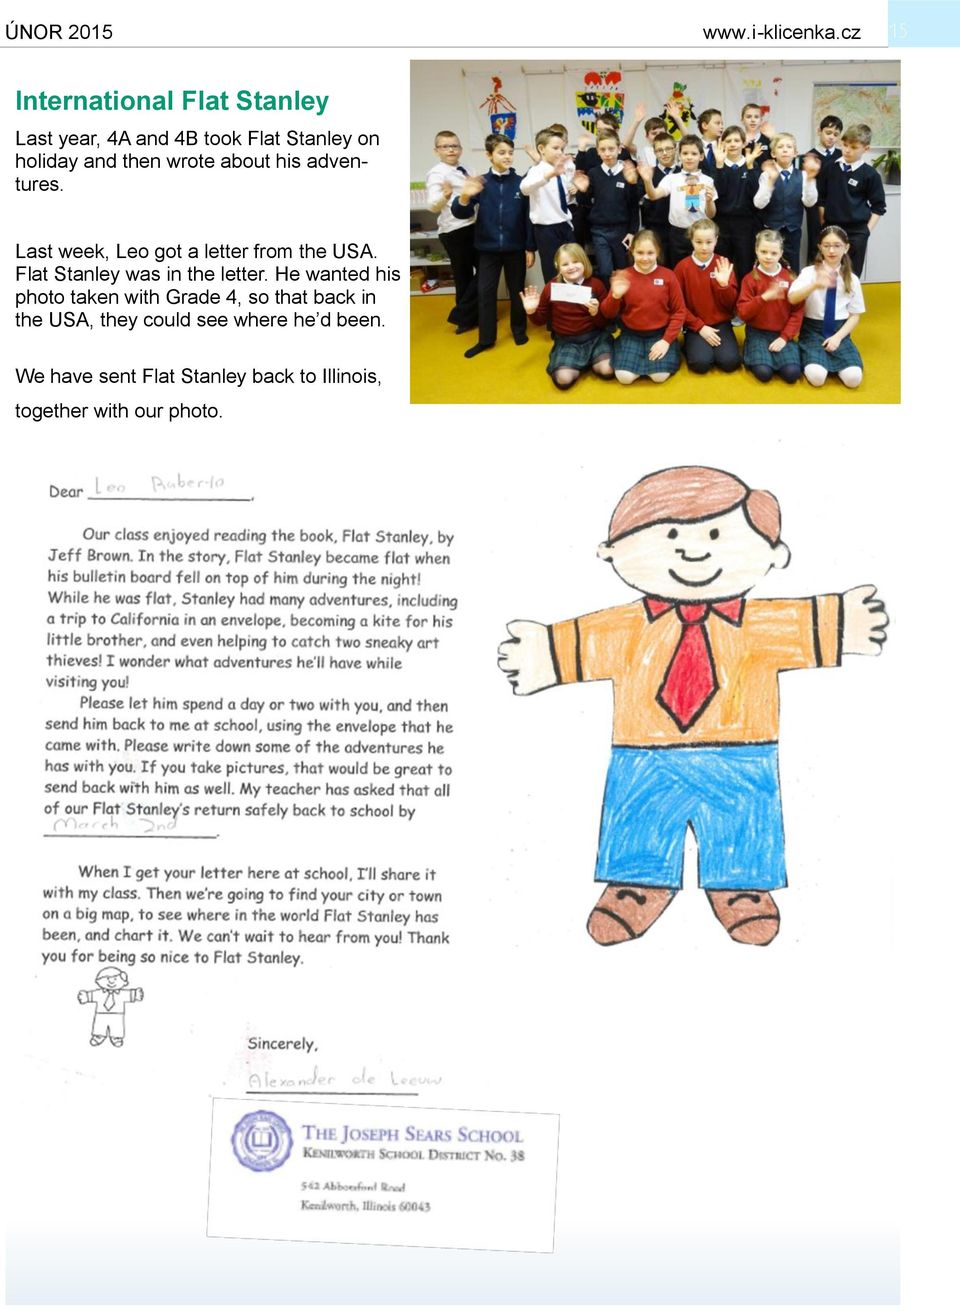 Flat Stanley was in the letter.